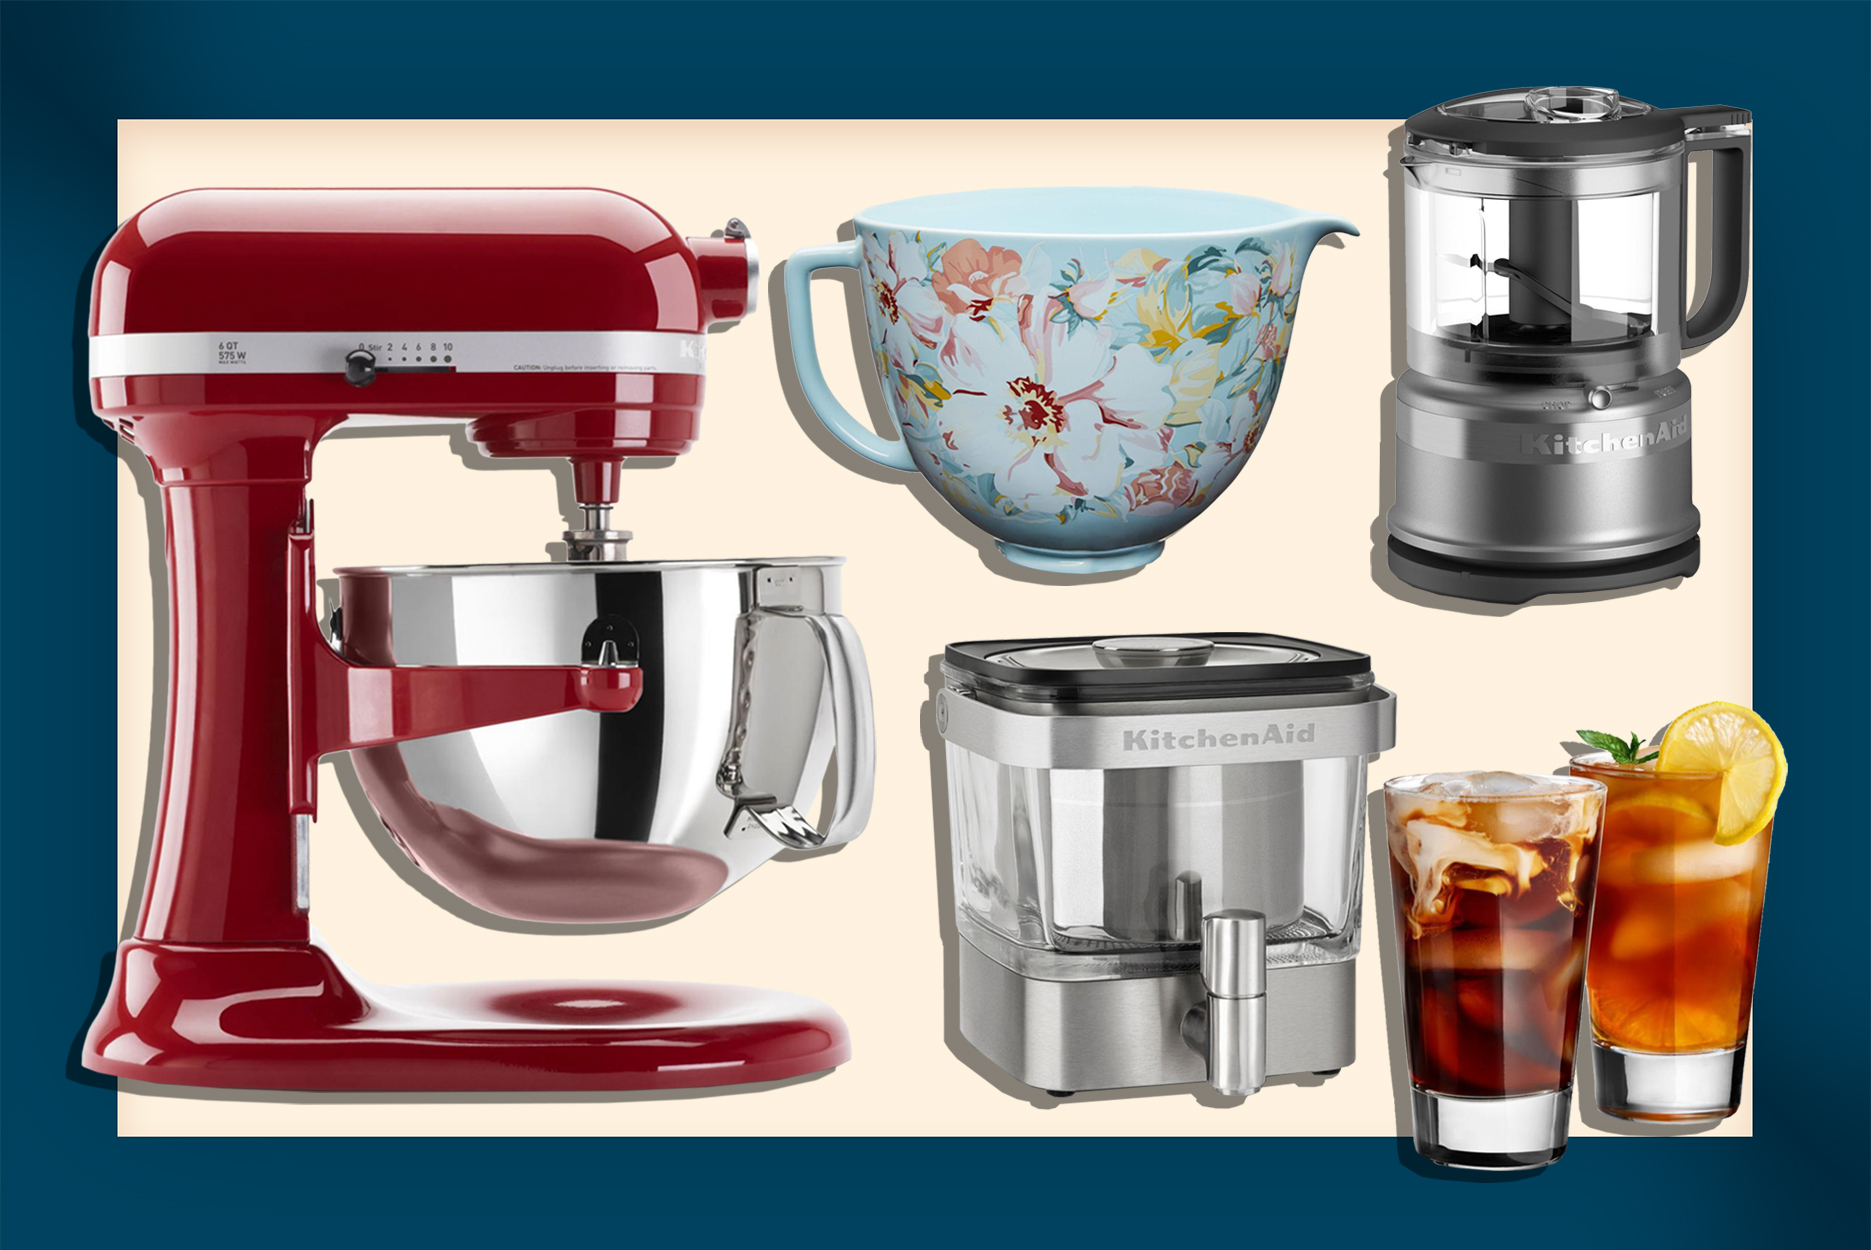 KitchenAid Appliances on Sale from Zola